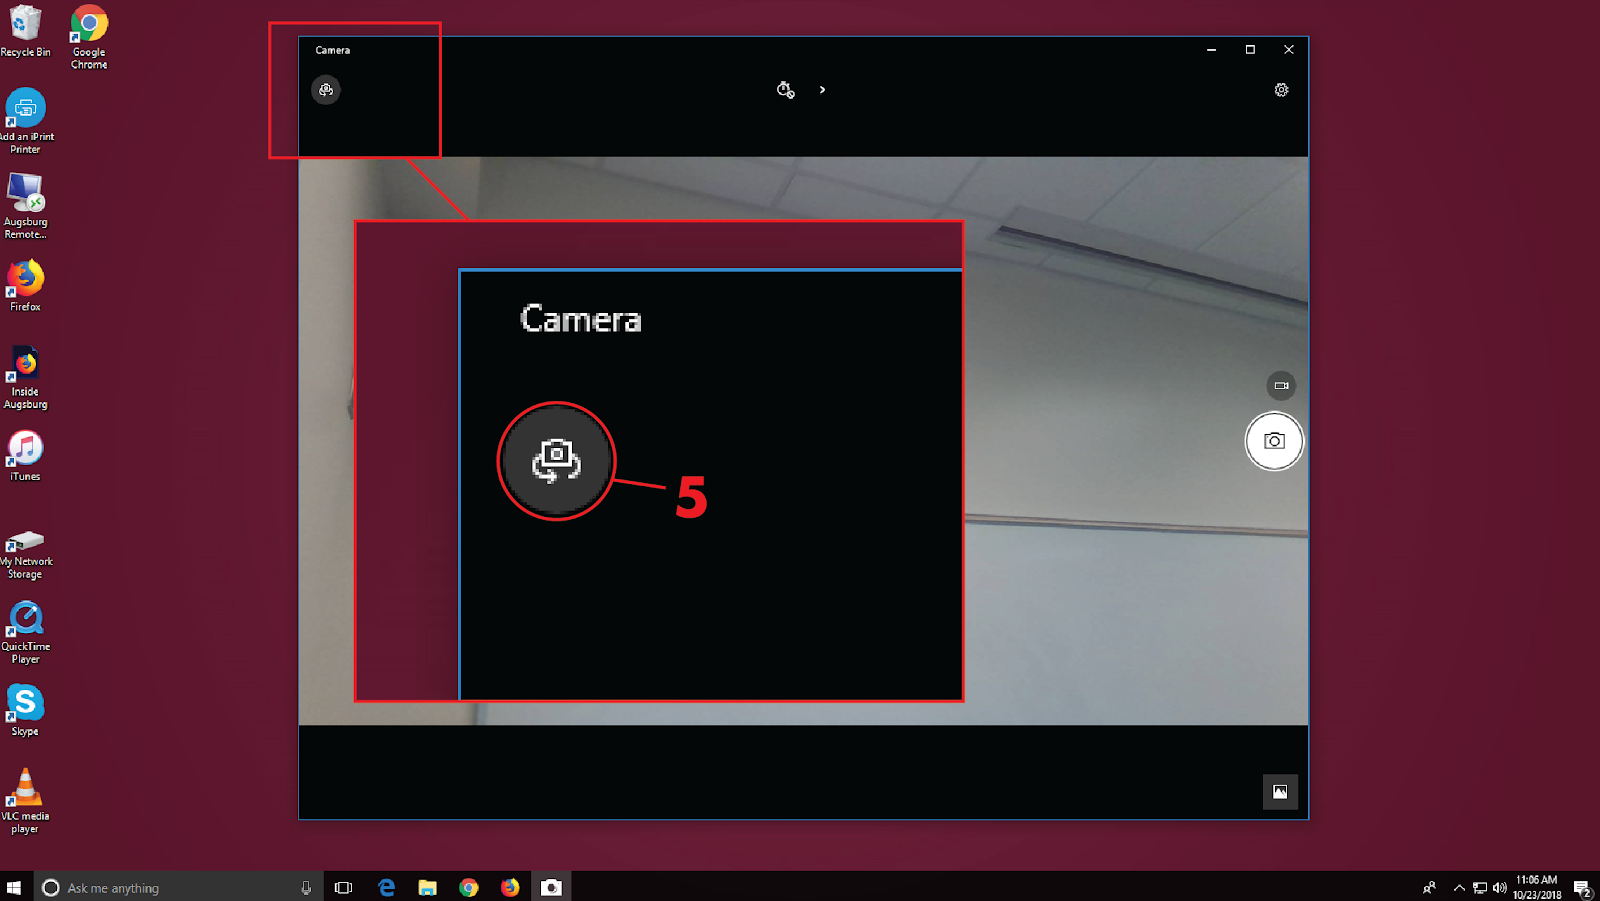 Switch from the forward facing camera to the document camera